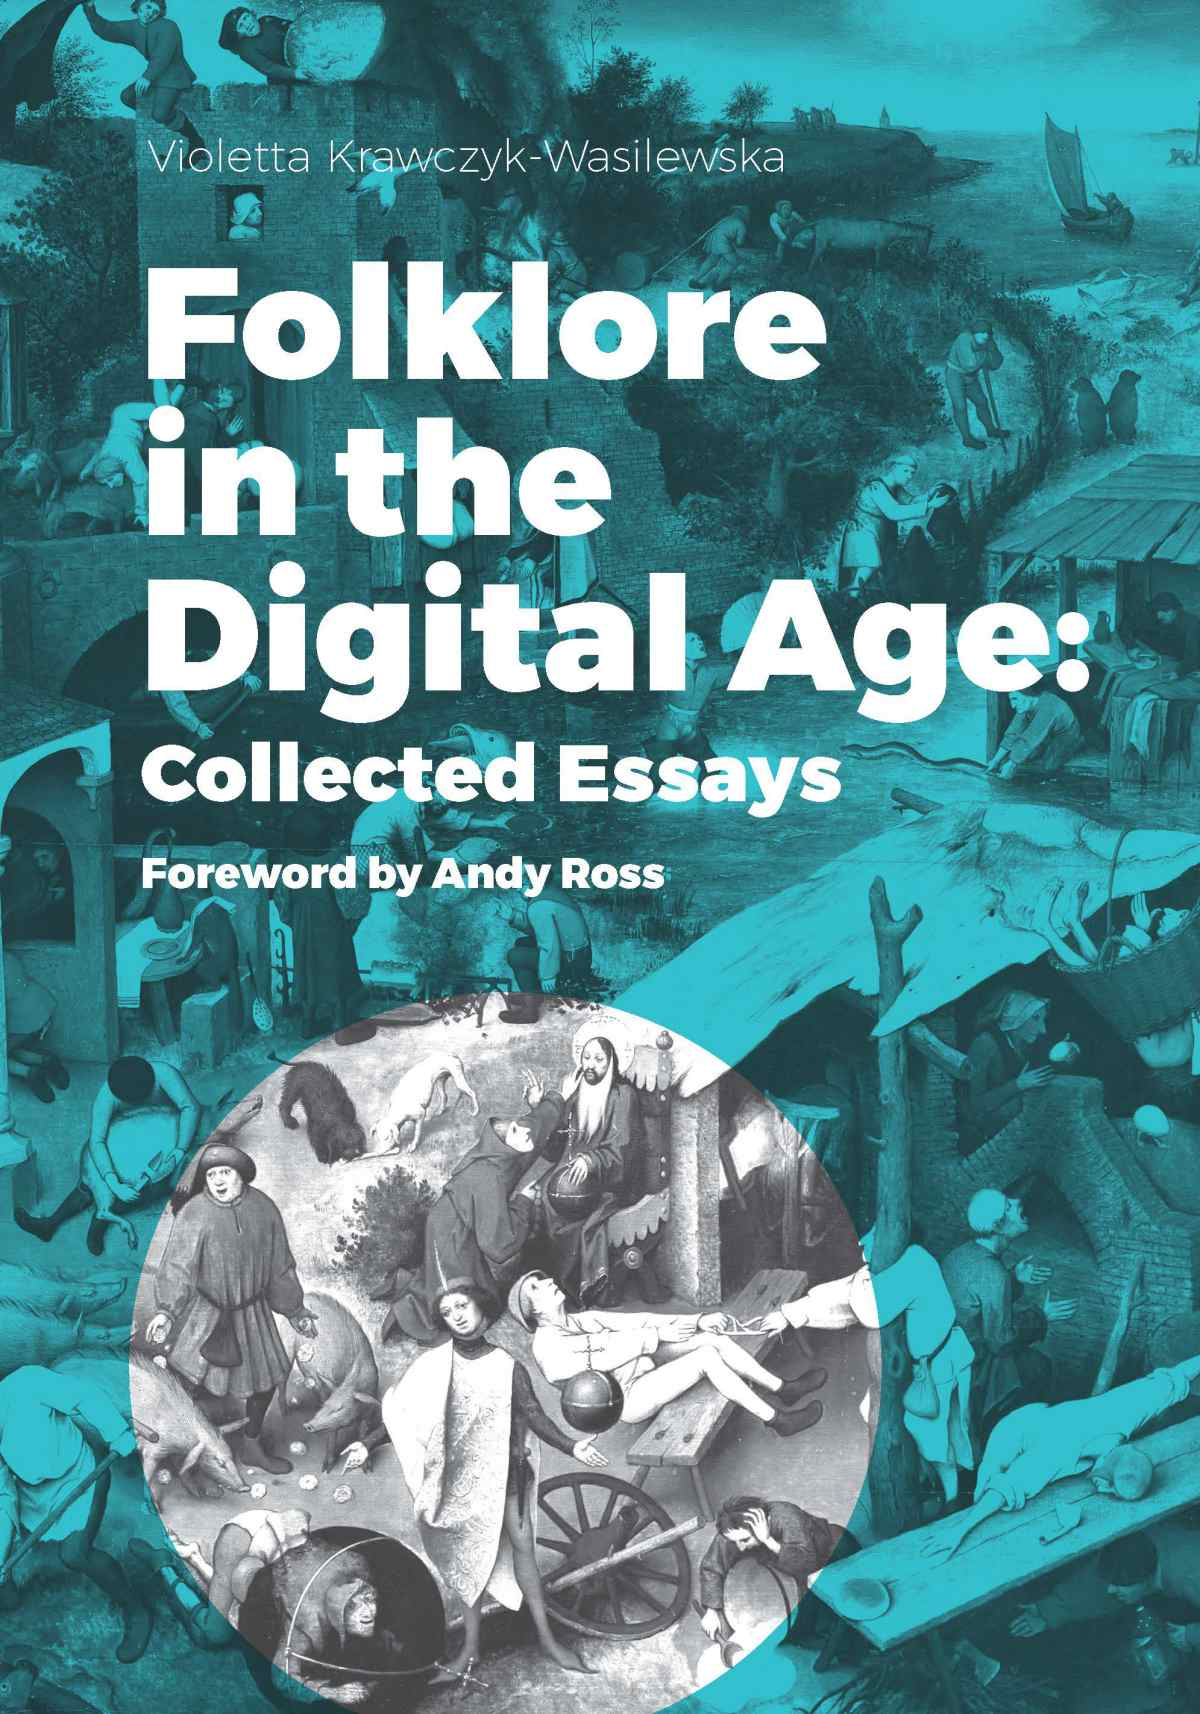 Folklore in the Digital Age: Collected Essays. Foreword by Andy Ross - Ebook (Książka PDF) do pobrania w formacie PDF